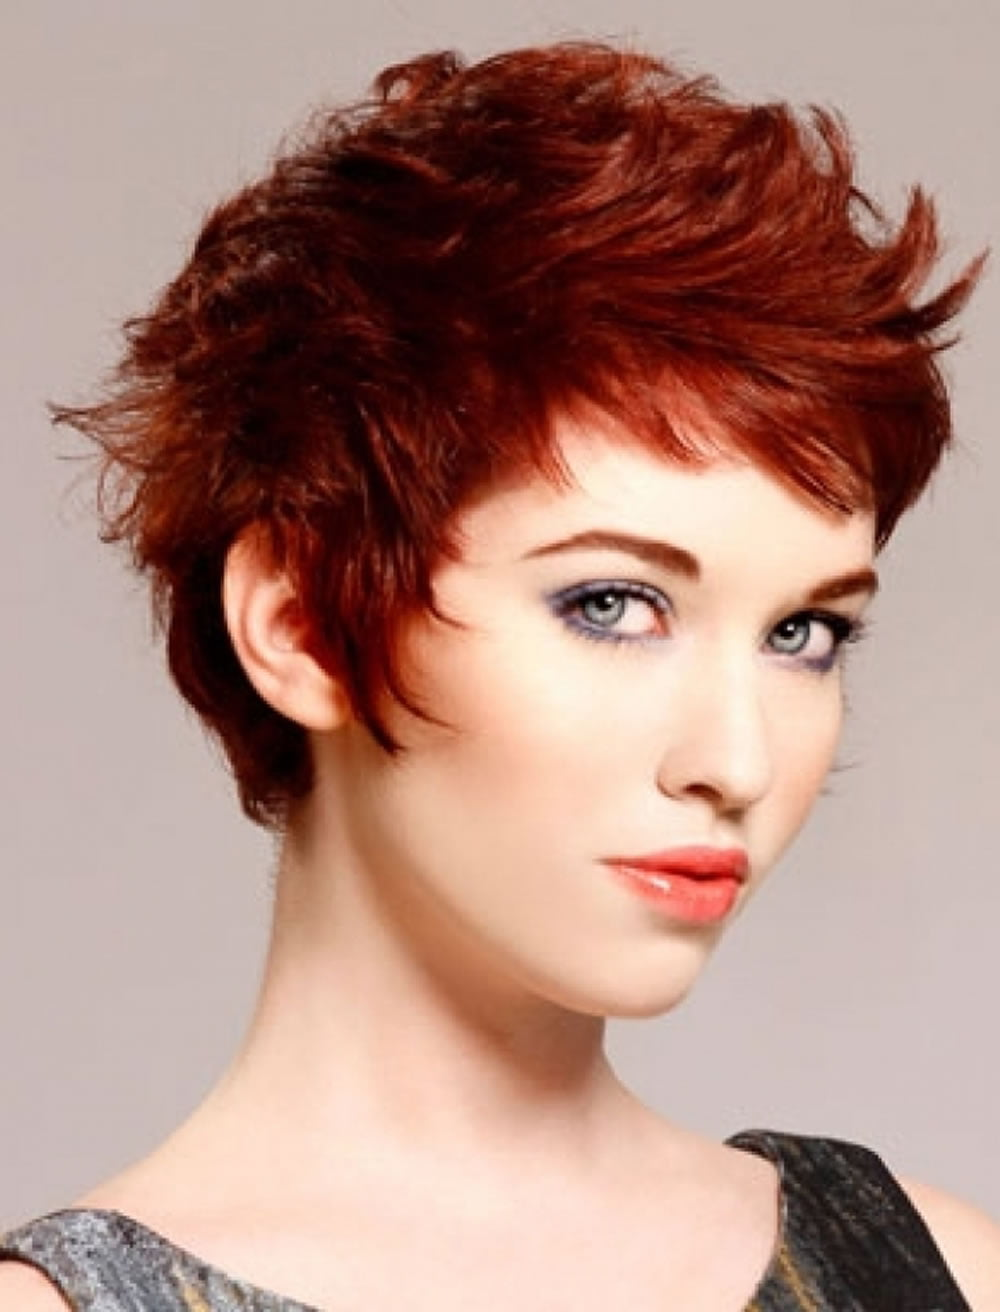 hair styles for women short hair hair color for hairstyles 27 cool haircut 3342 | Magnificent Short Messy Haircuts Red Hair Color for Women 2017